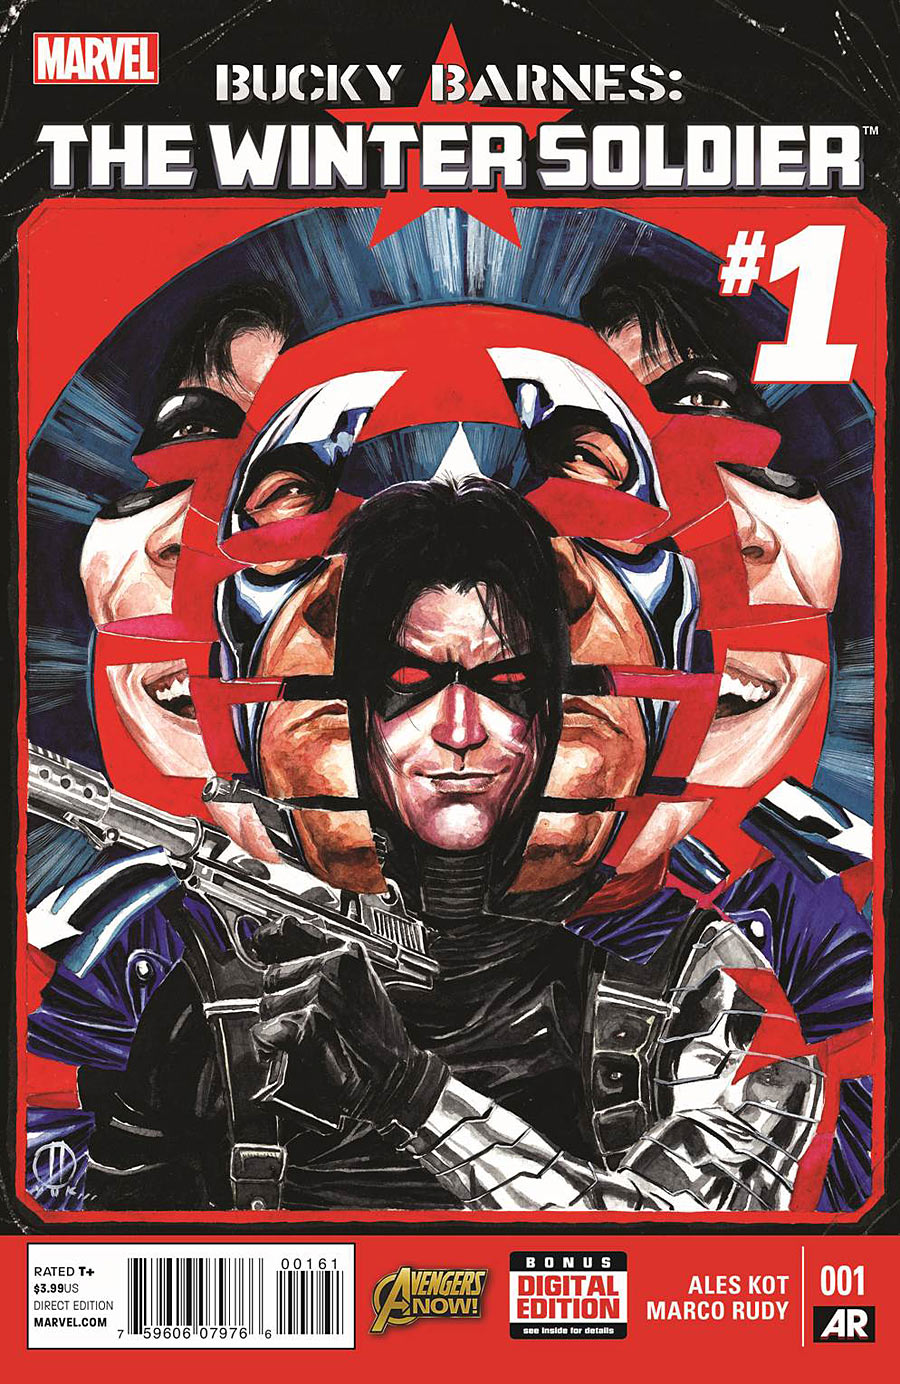 Copertina di Bucky Barnes: The Winter Soldier 1 del 2014, di Marco Rudy